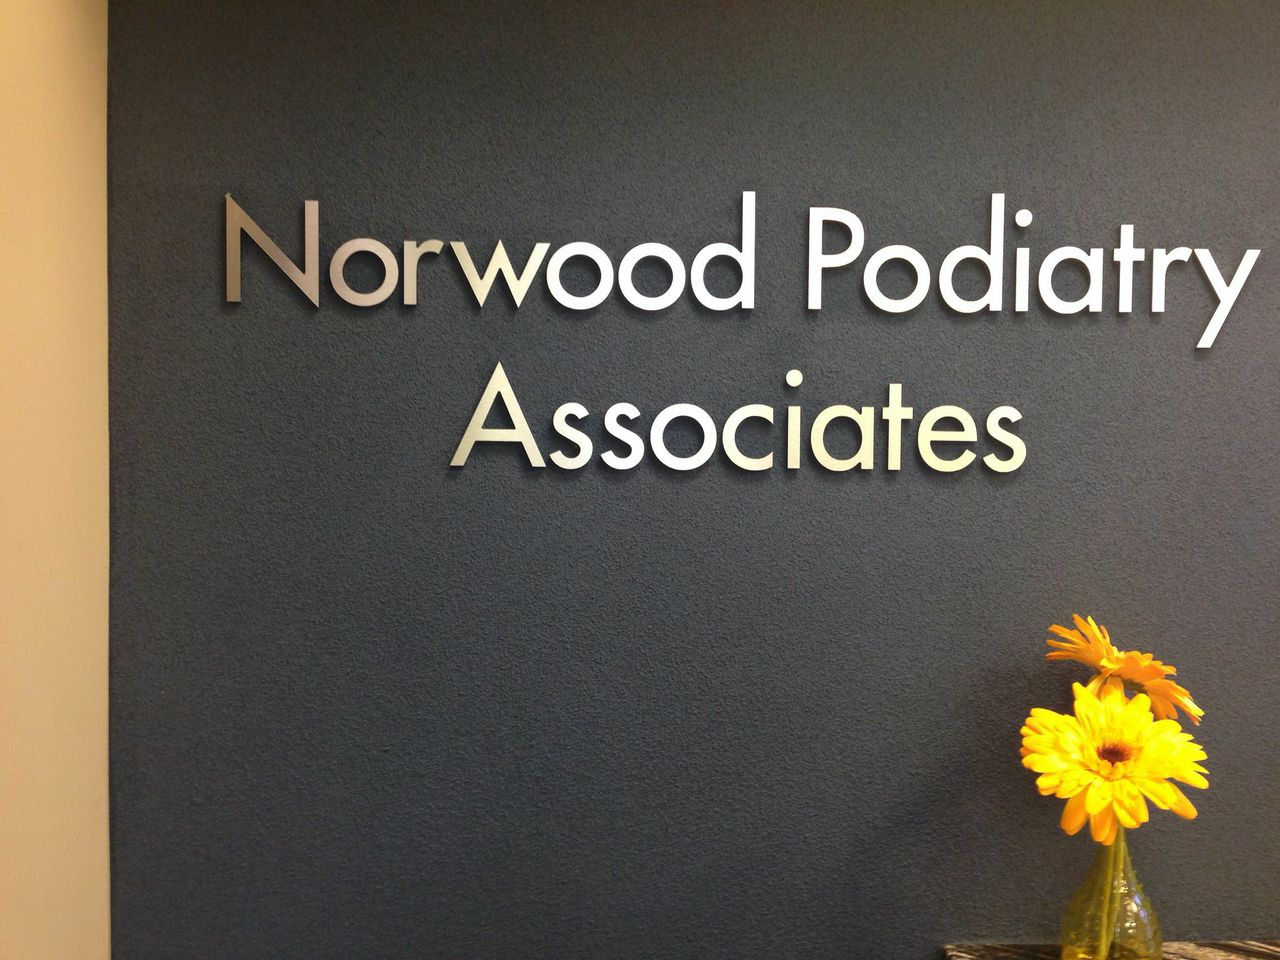 Norwood Podiatry Associaties